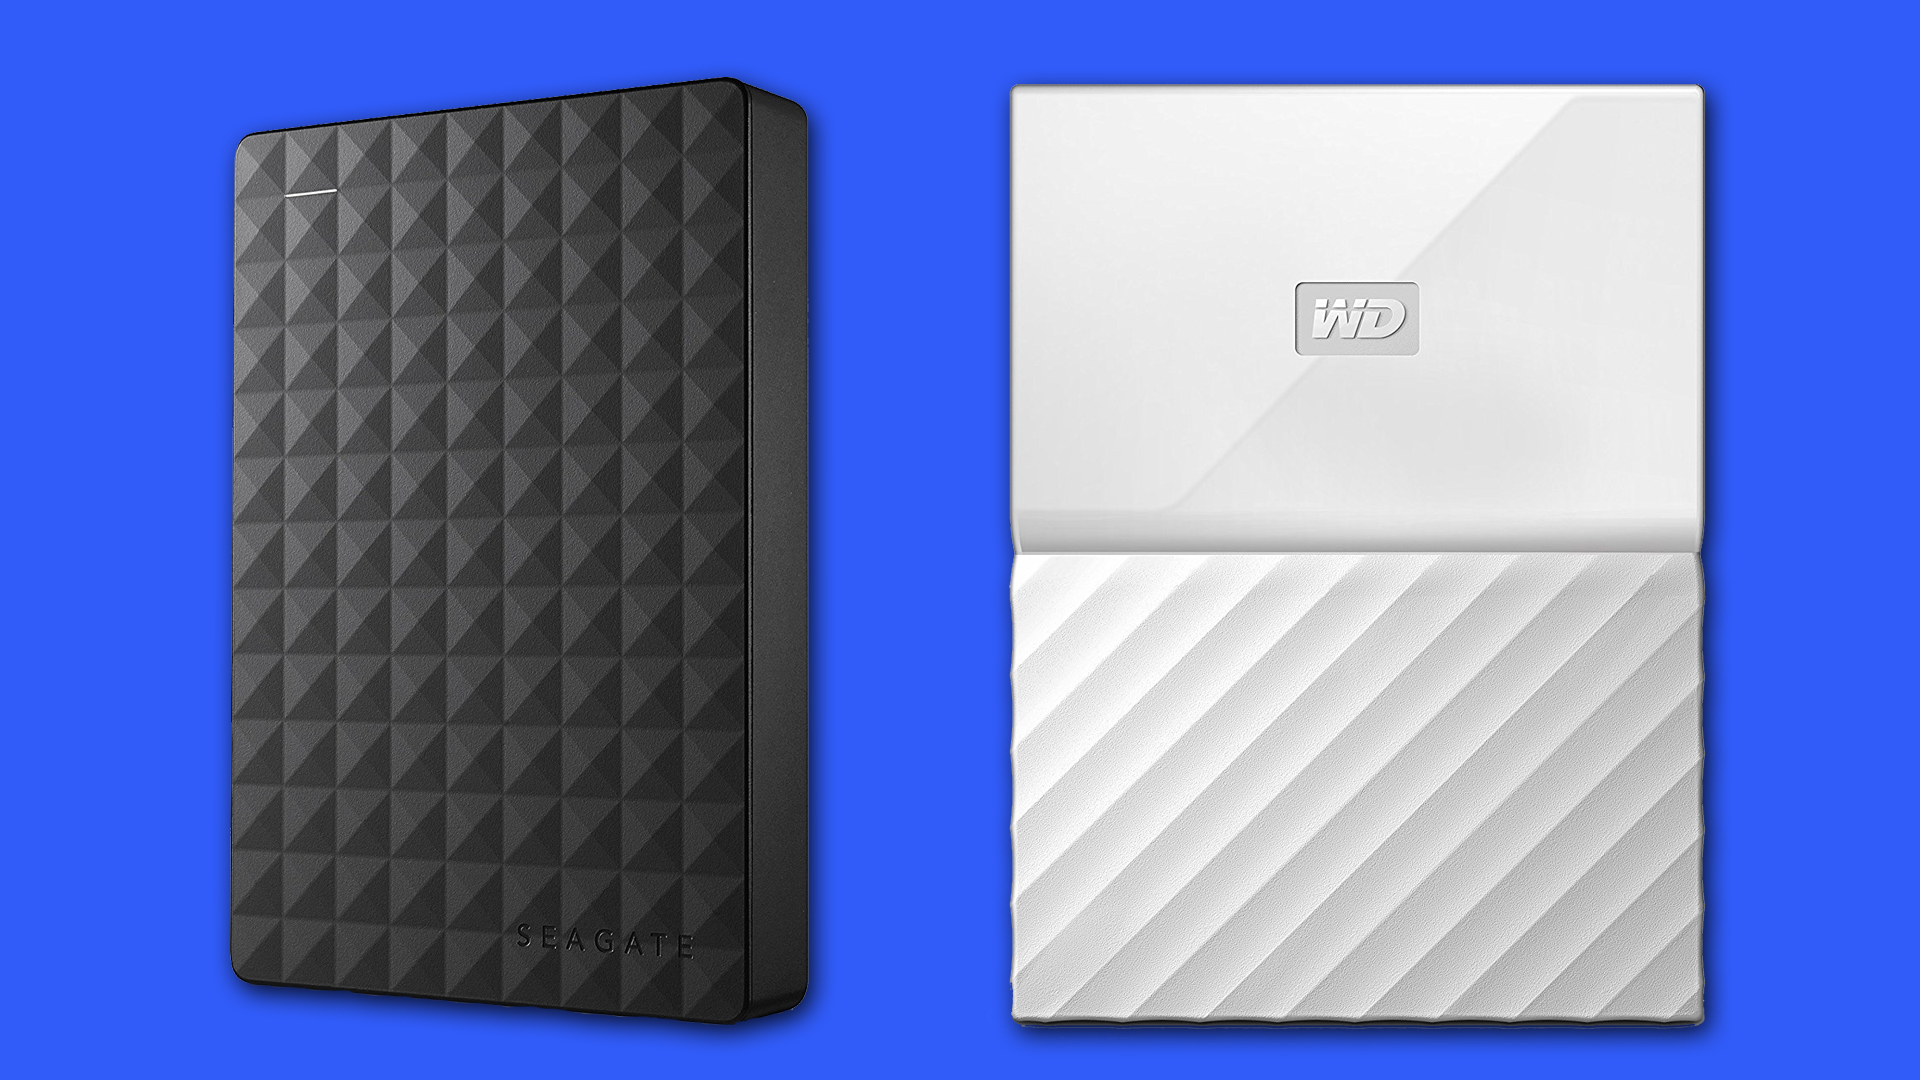 Best Ps4 External Hard Drives 2019 More Hdd Space For Your